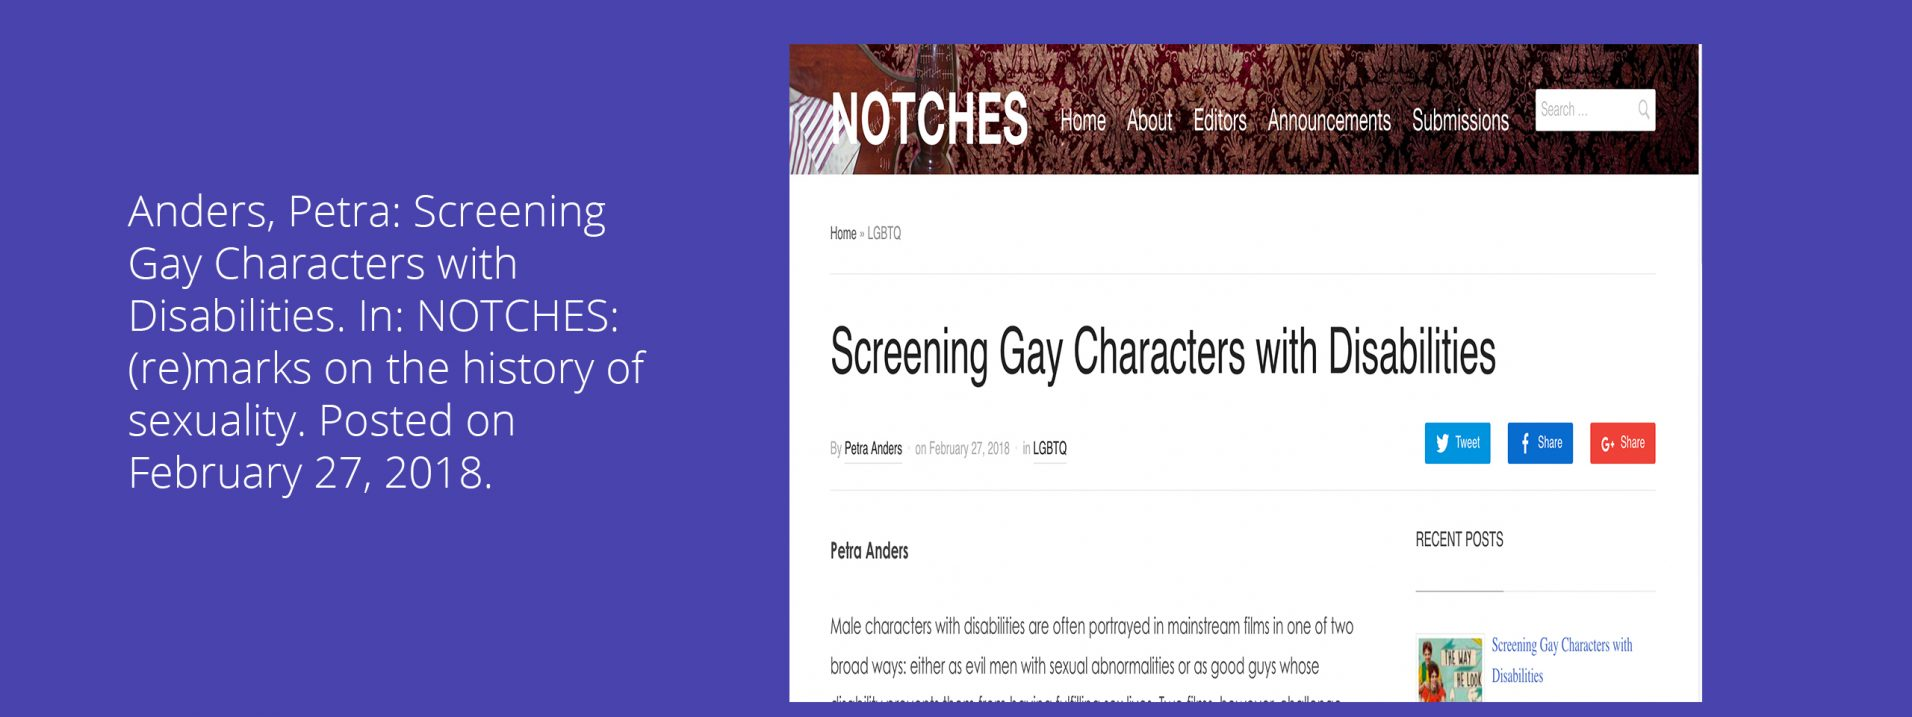 Anders, Petra: Screening Gay Characters with Disabilities. In: NOTCHES: (re)marks on the history of sexuality. Posted on February 27, 2018.